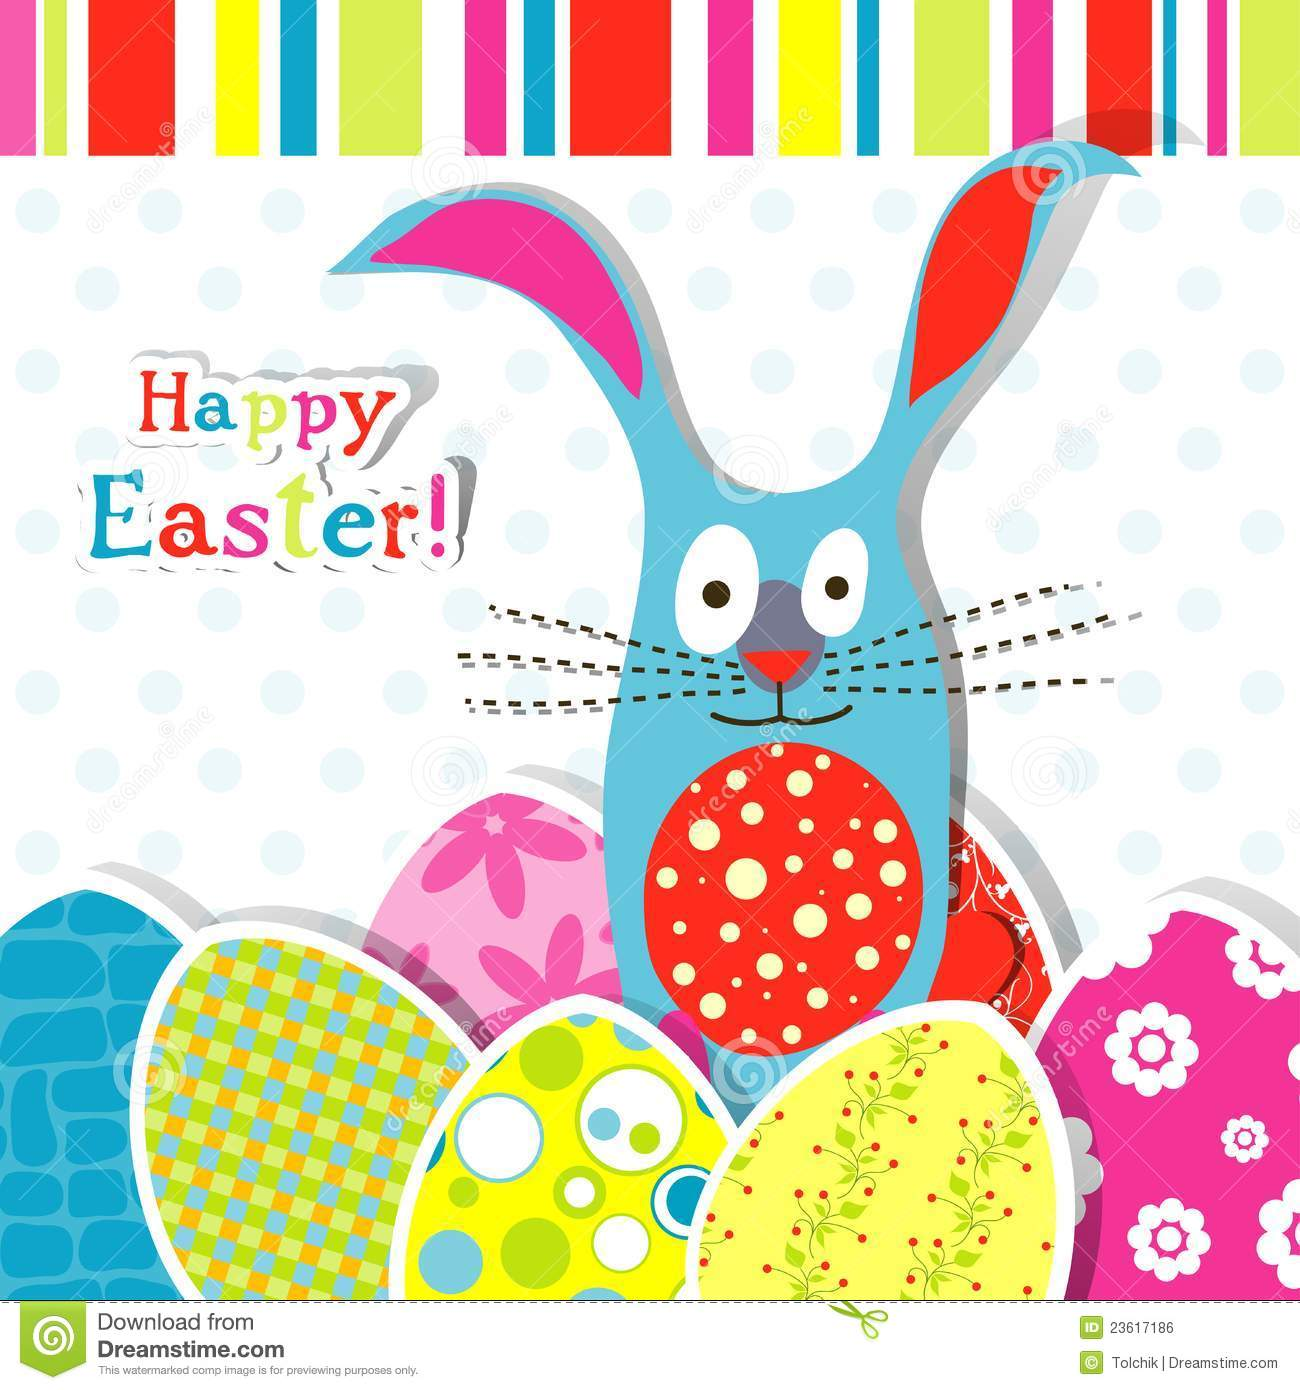 Template Greeting Card Royalty Free Stock Image: Template Easter Greeting Card Royalty Free Stock Image